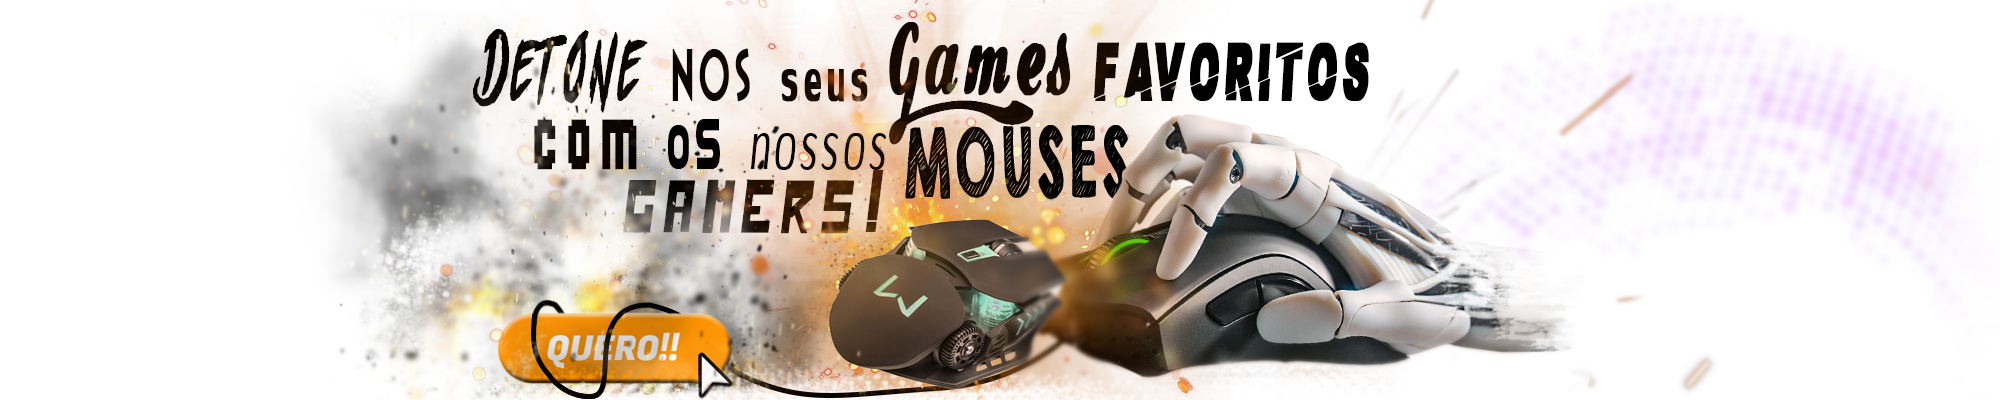 HOME MOUSES GAMERS